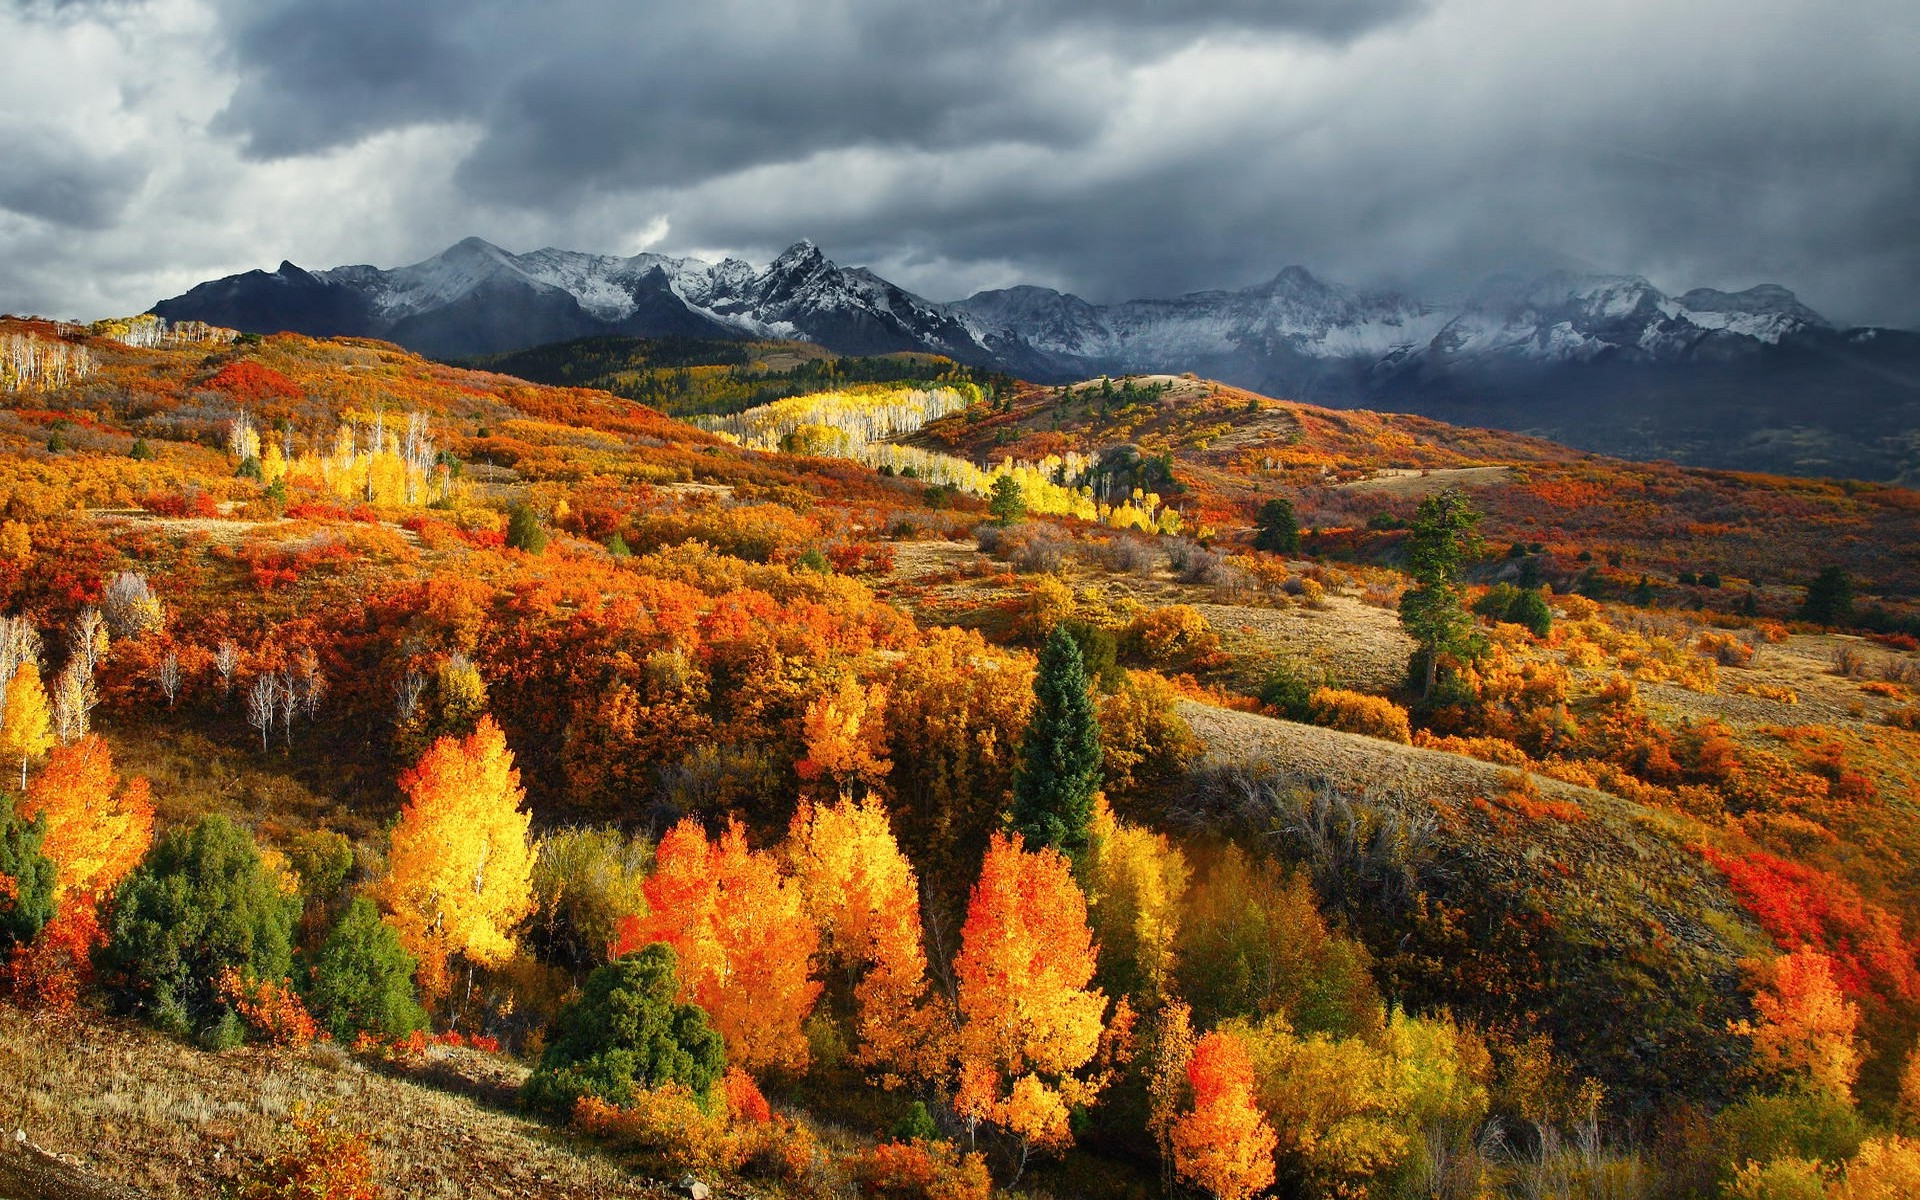 colorful-colorado-landscape-hd-wallpaper-61845-63690-hd-wallpapers.jpg